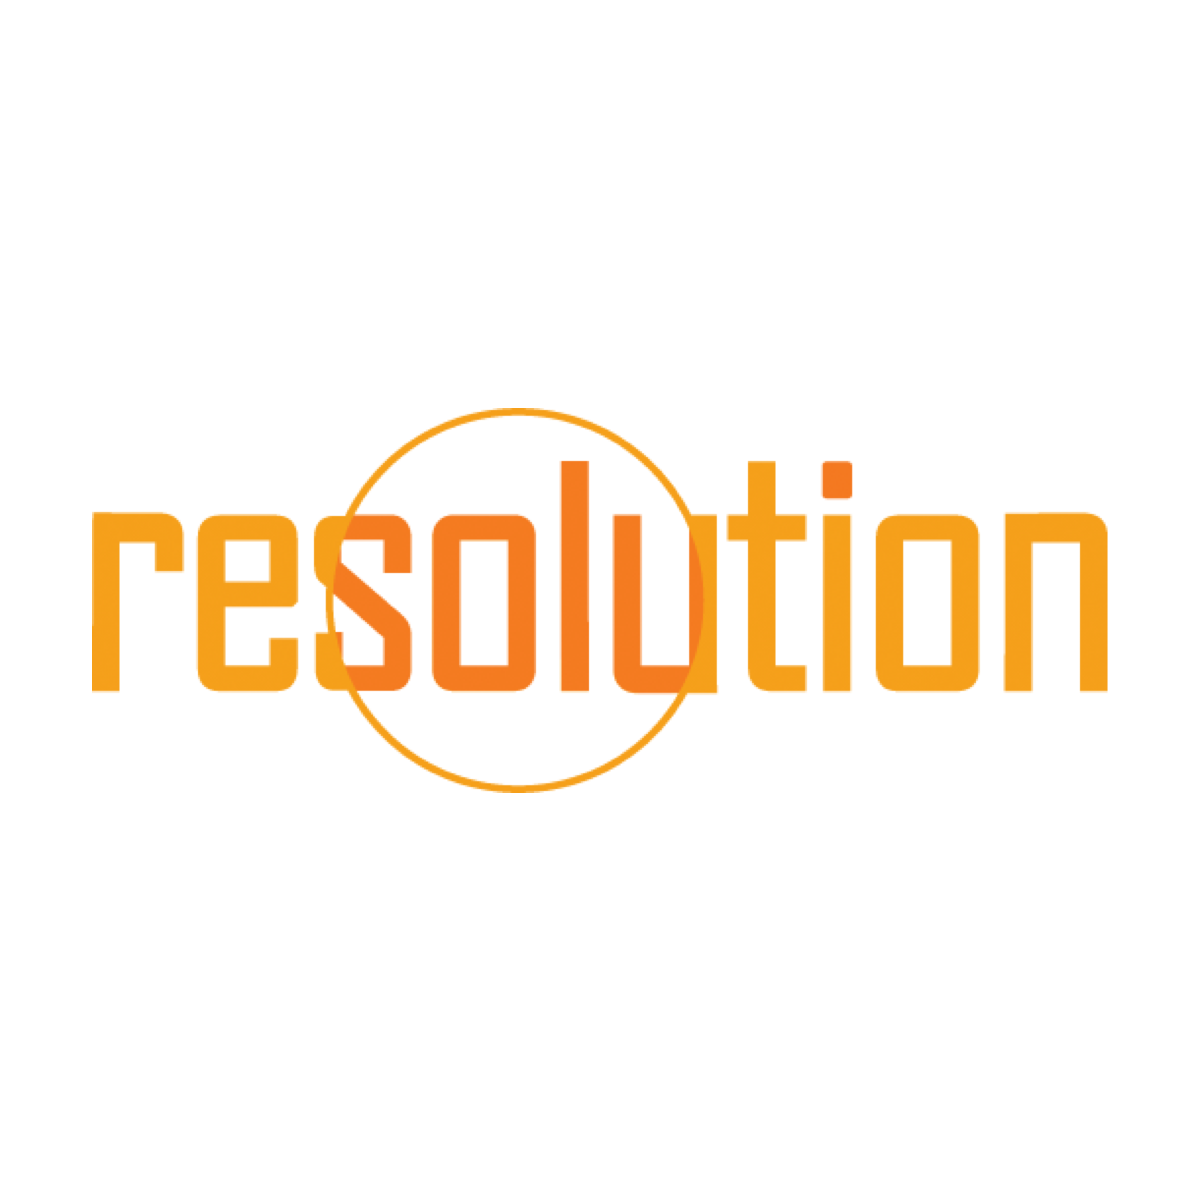 Resolution logo signee.png